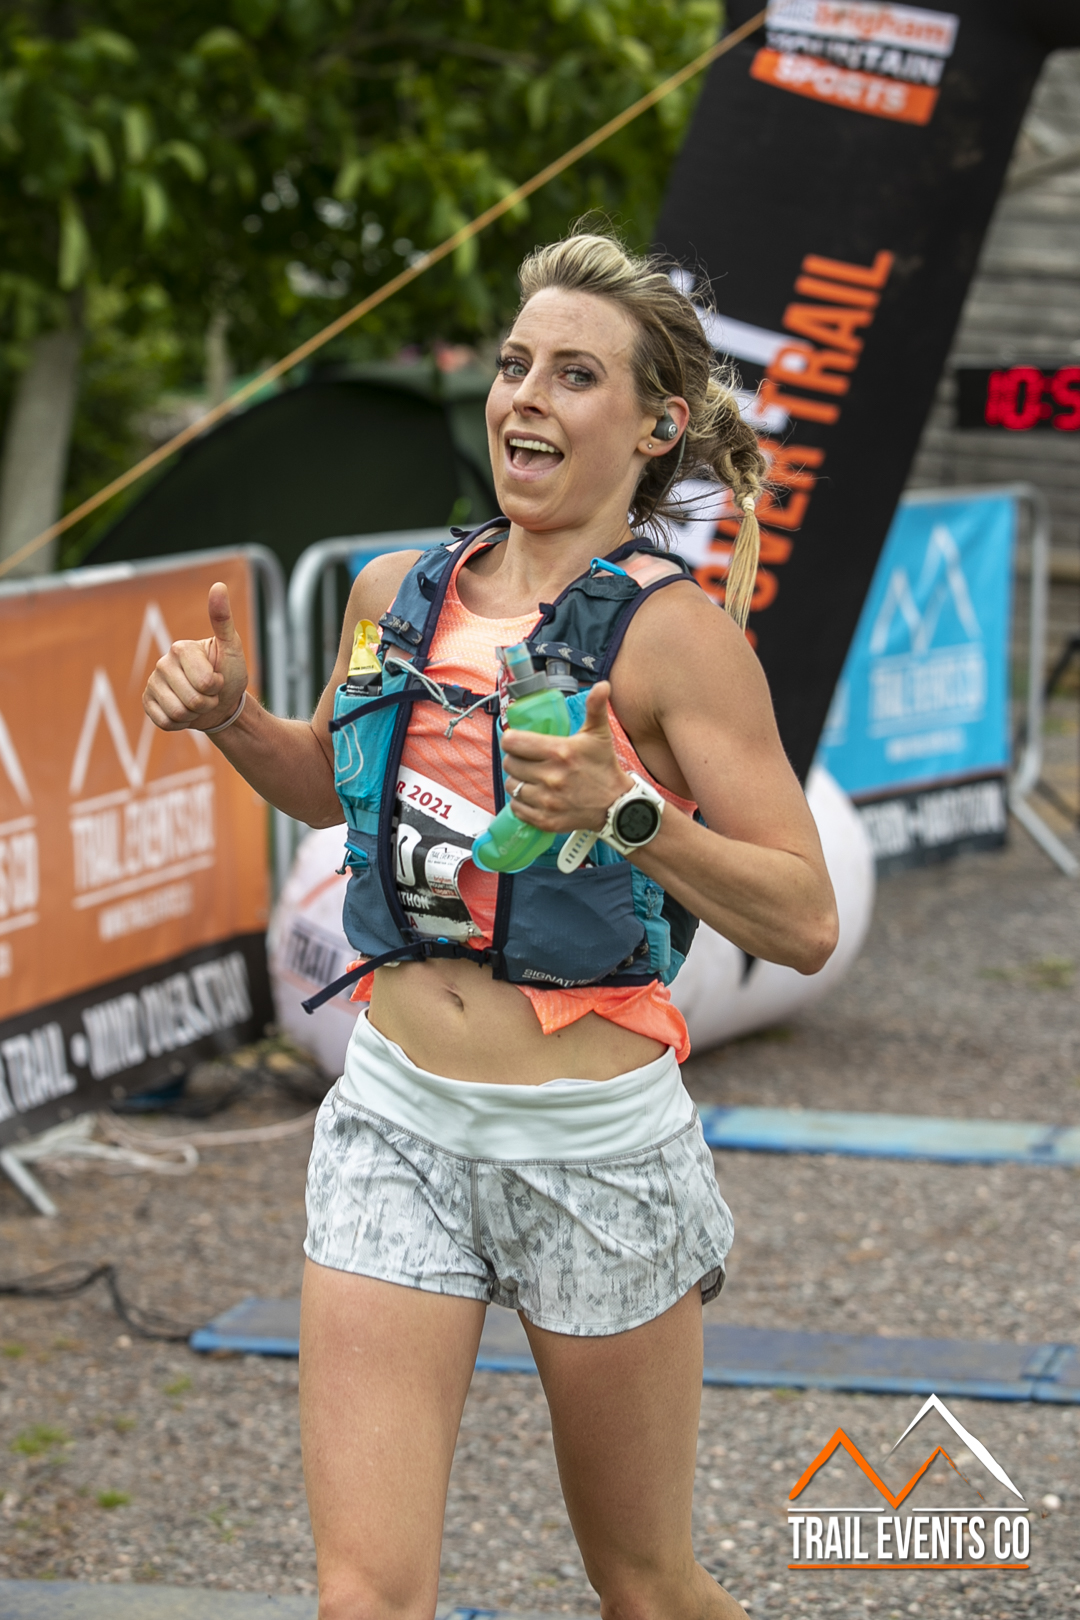 Exmoor Trail Running Challenge 2022 - Trail Events Co